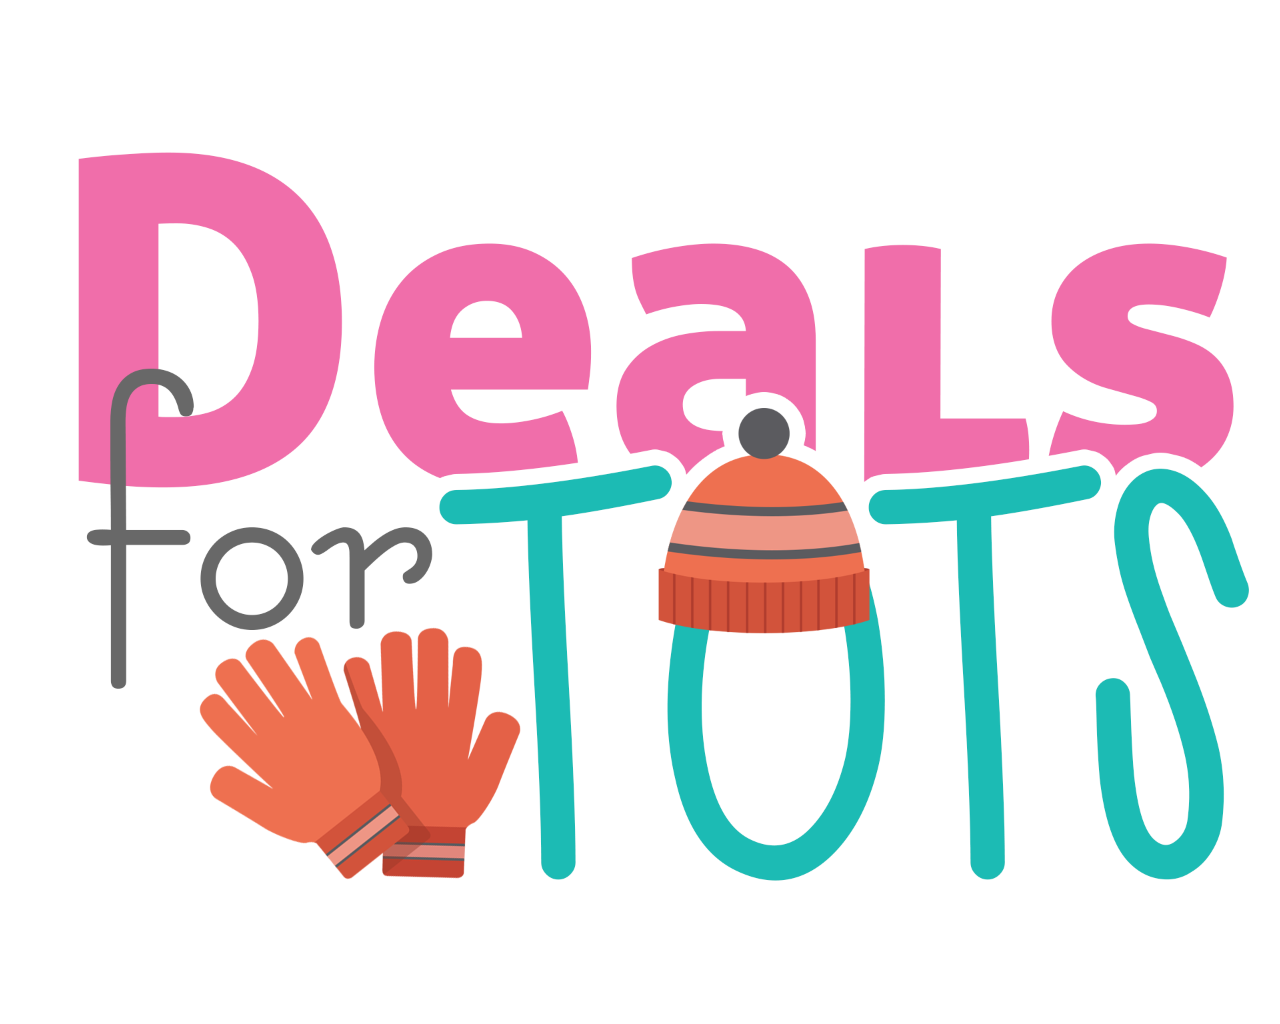 Dealsfortut